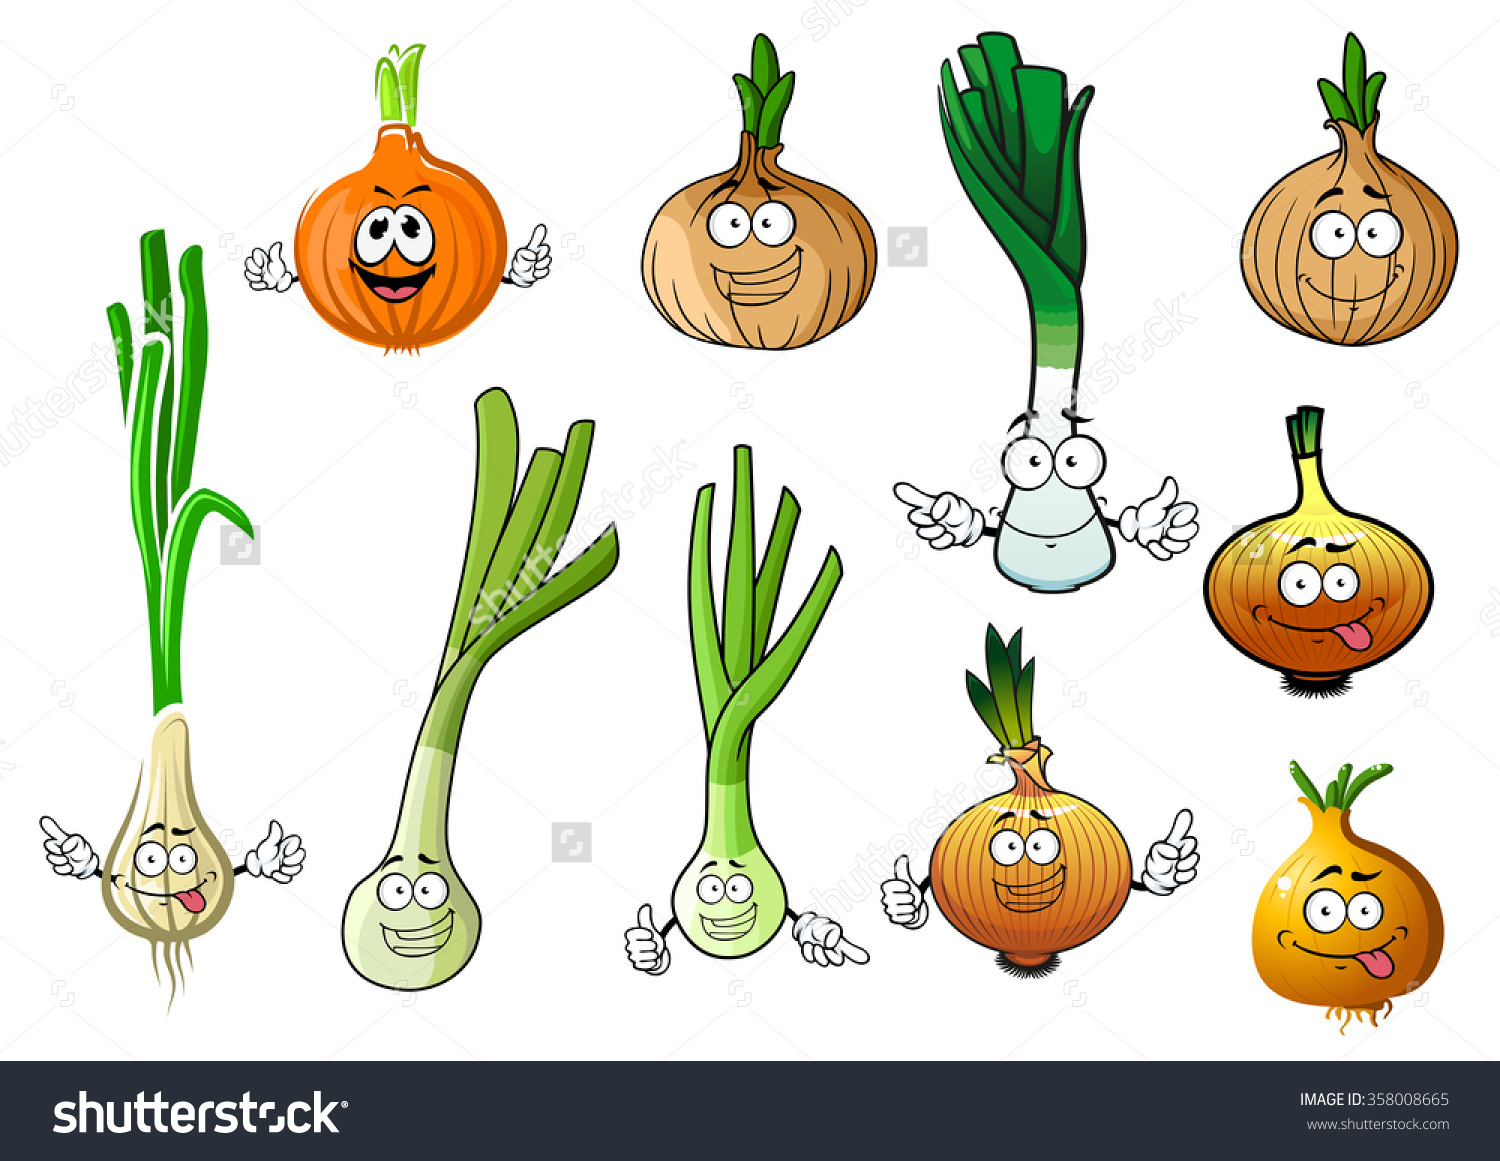 Cartoon Green Onions Fresh Juicy Leek Stock Vector 358008665.